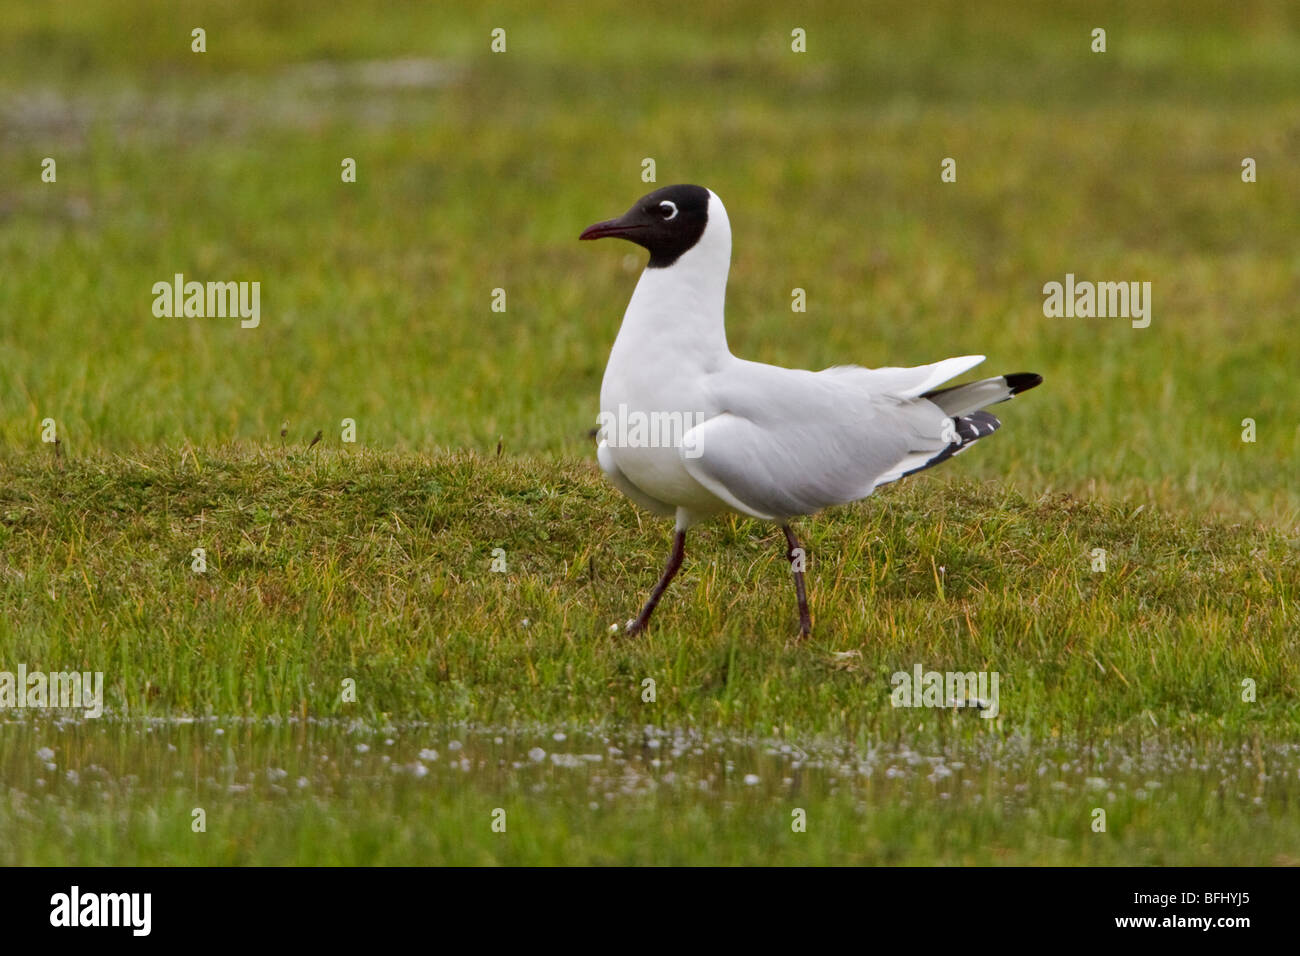 Andean Gull (Larus serranus) perched on paramo vegetation in the highlands of Ecuador. - Stock Image